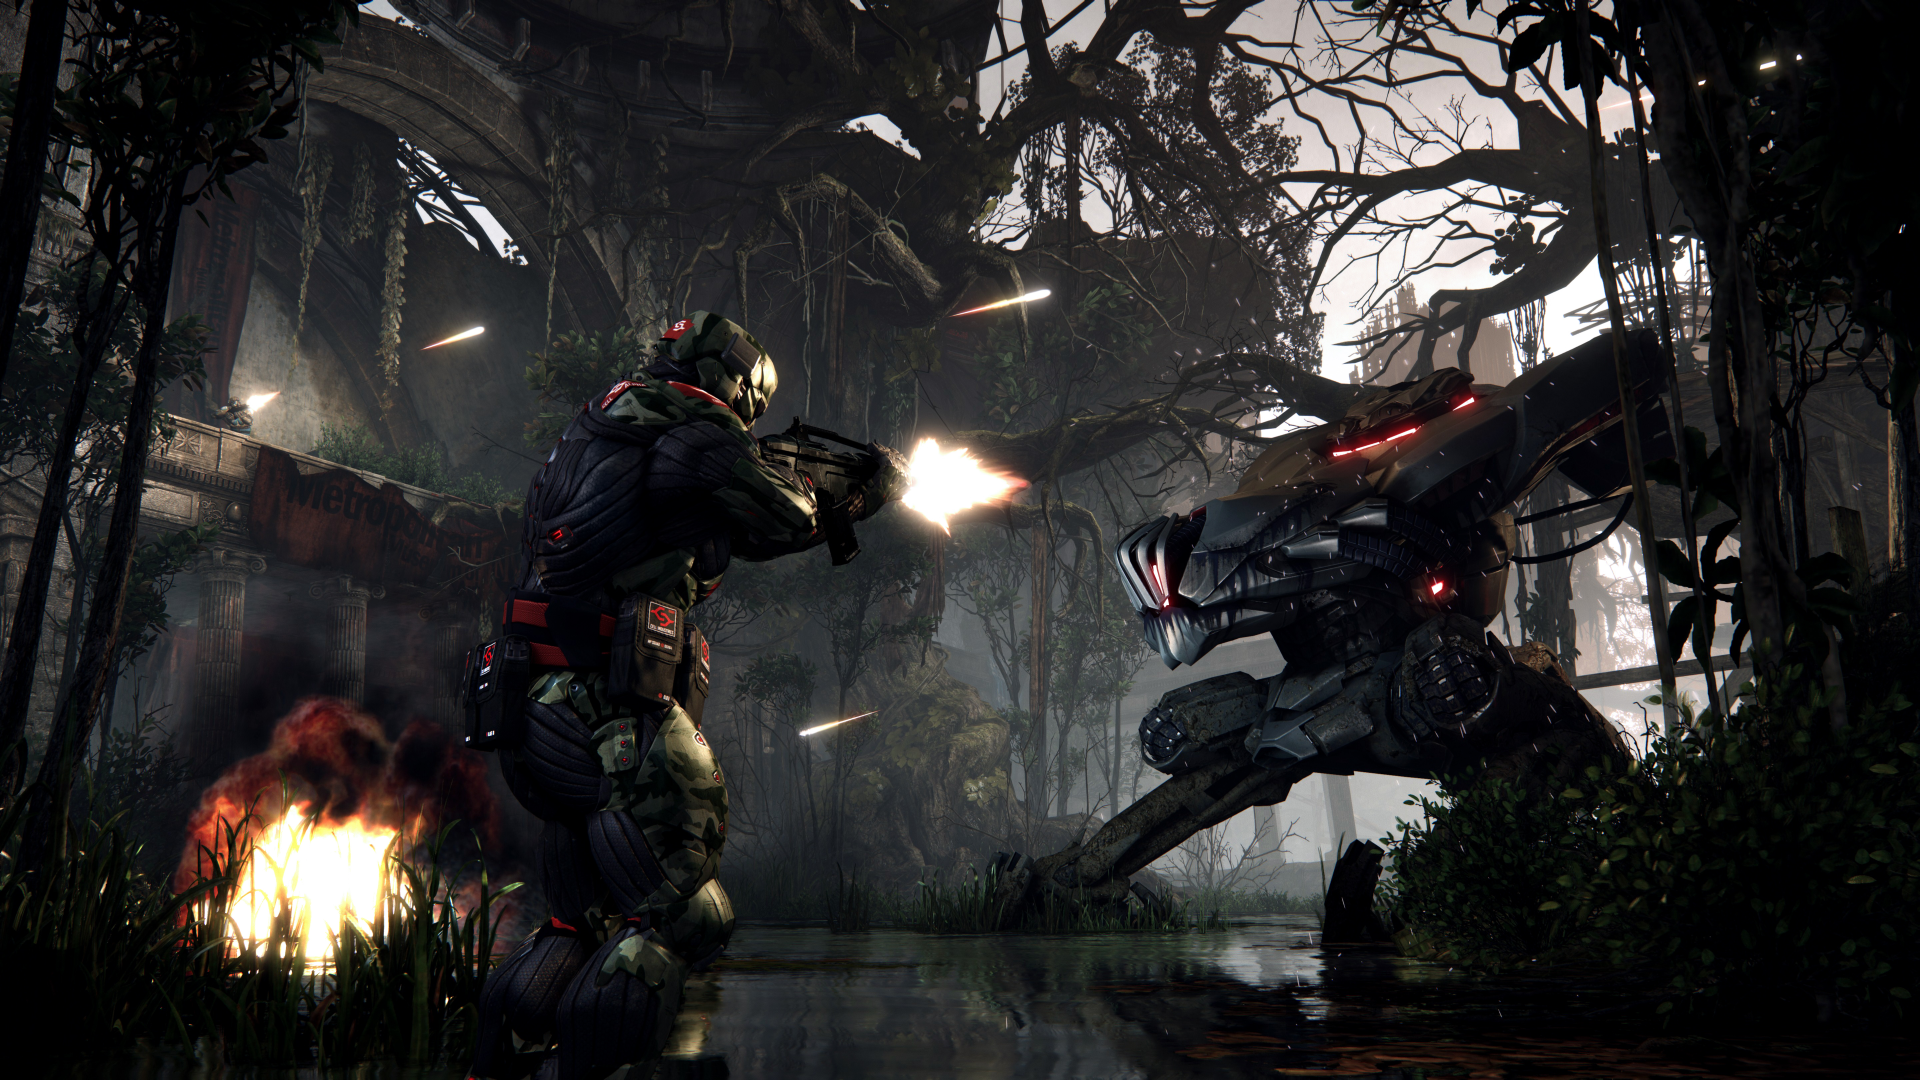 Crysis 3 - Ceph power! - YouTube